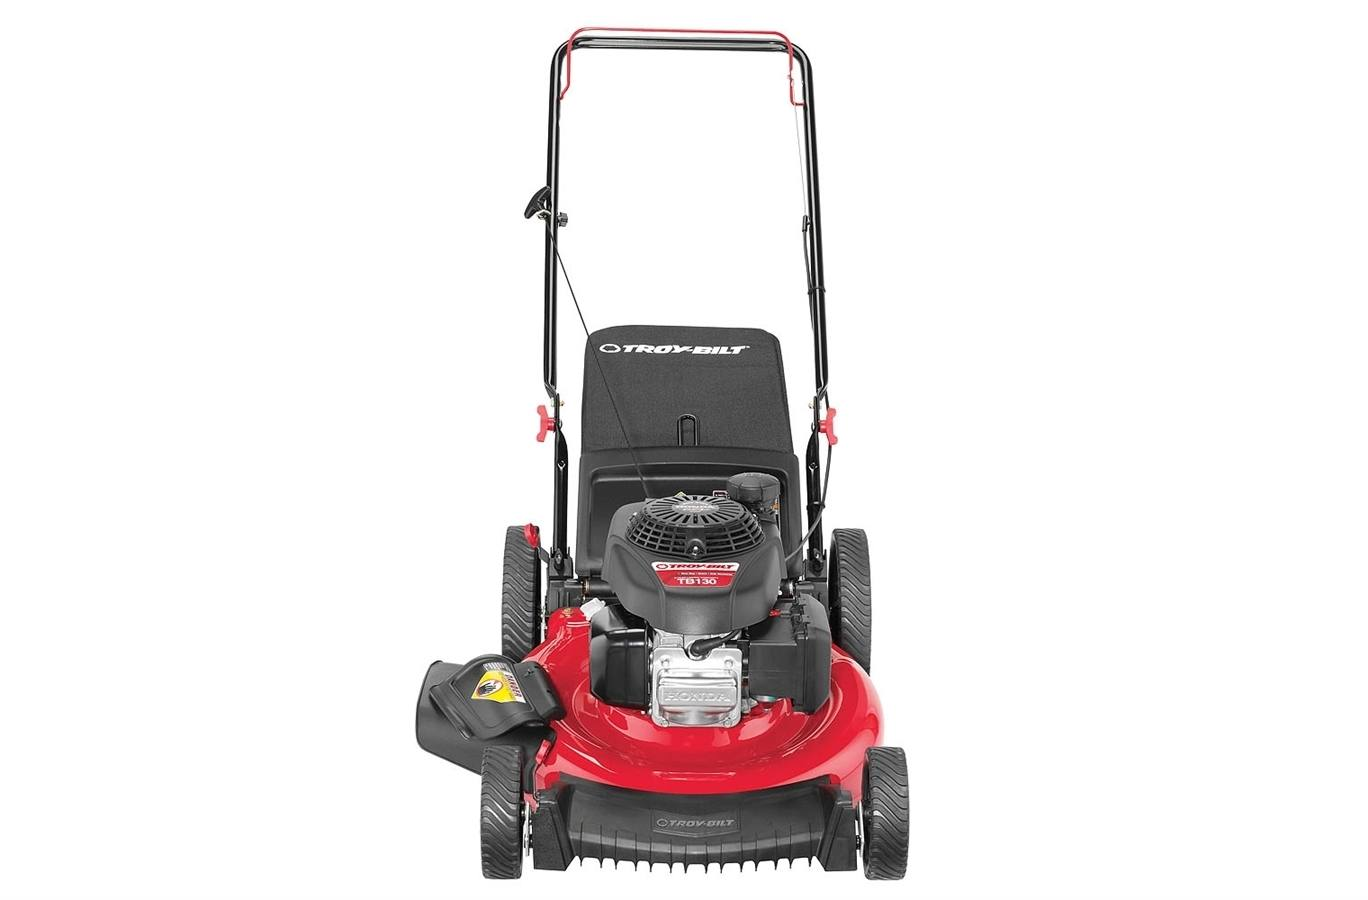 2017 Troy Bilt Tb130 High Wheel Walk Behind Push Mower For Sale In